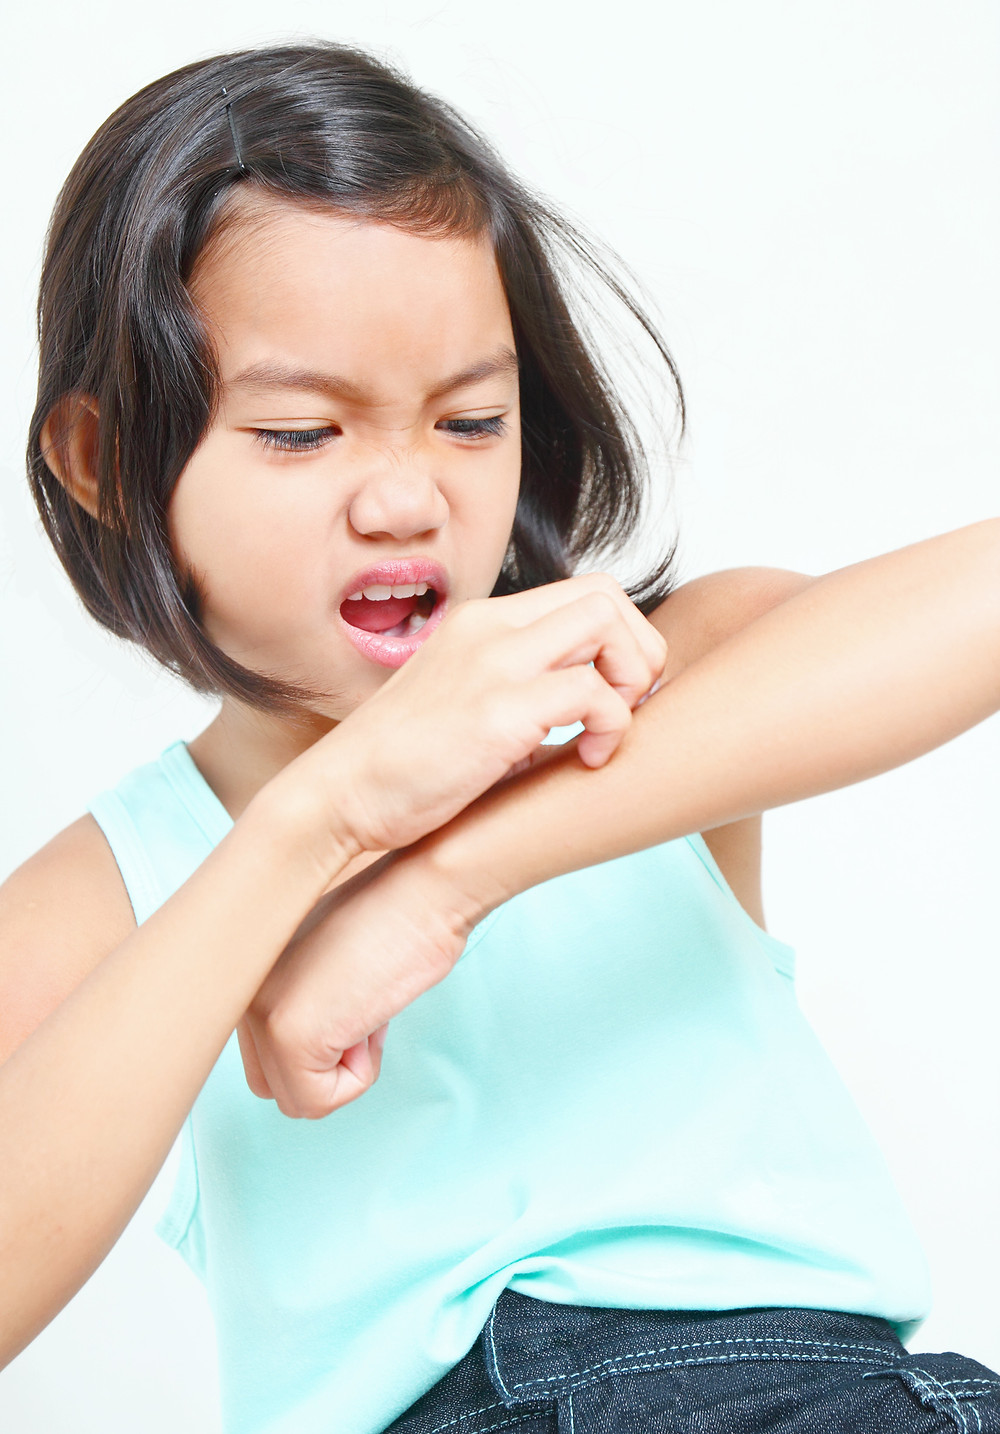 Nickel Allergy: Is the Metal Giving Your Child a Rash?